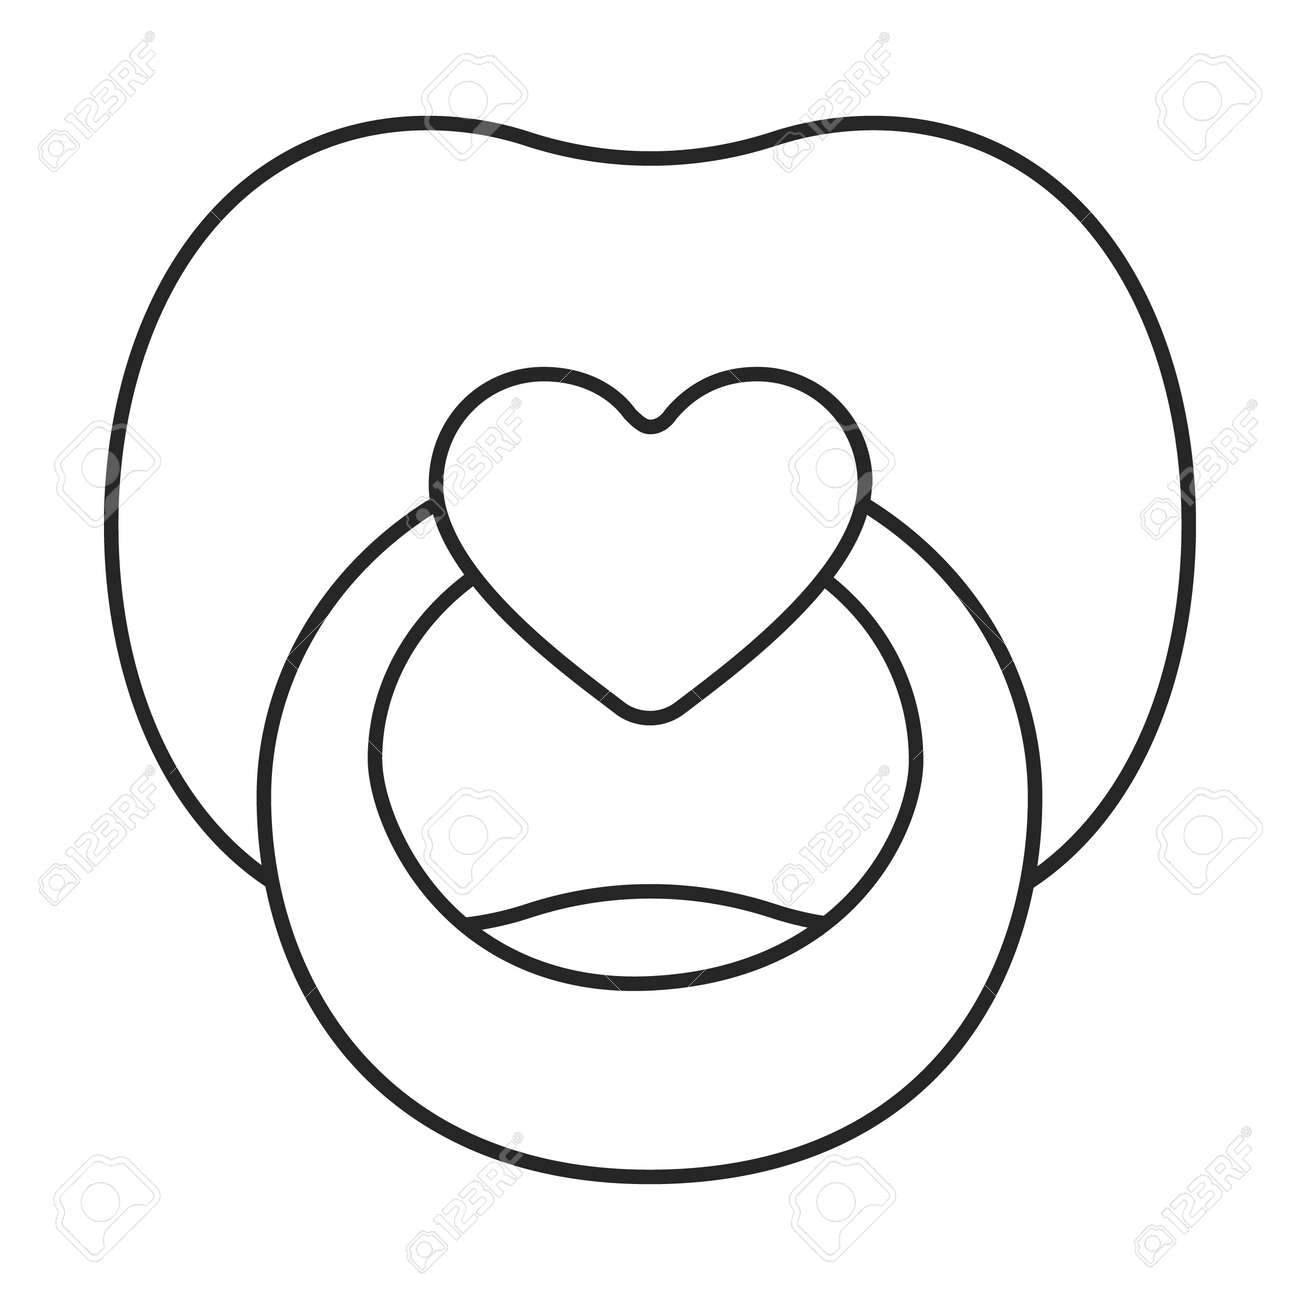 Dummy pacifier vector outline icon. Vector illustration baby on white background. Isolated outline illustration icon of baby dummy pacifier. - 168840964